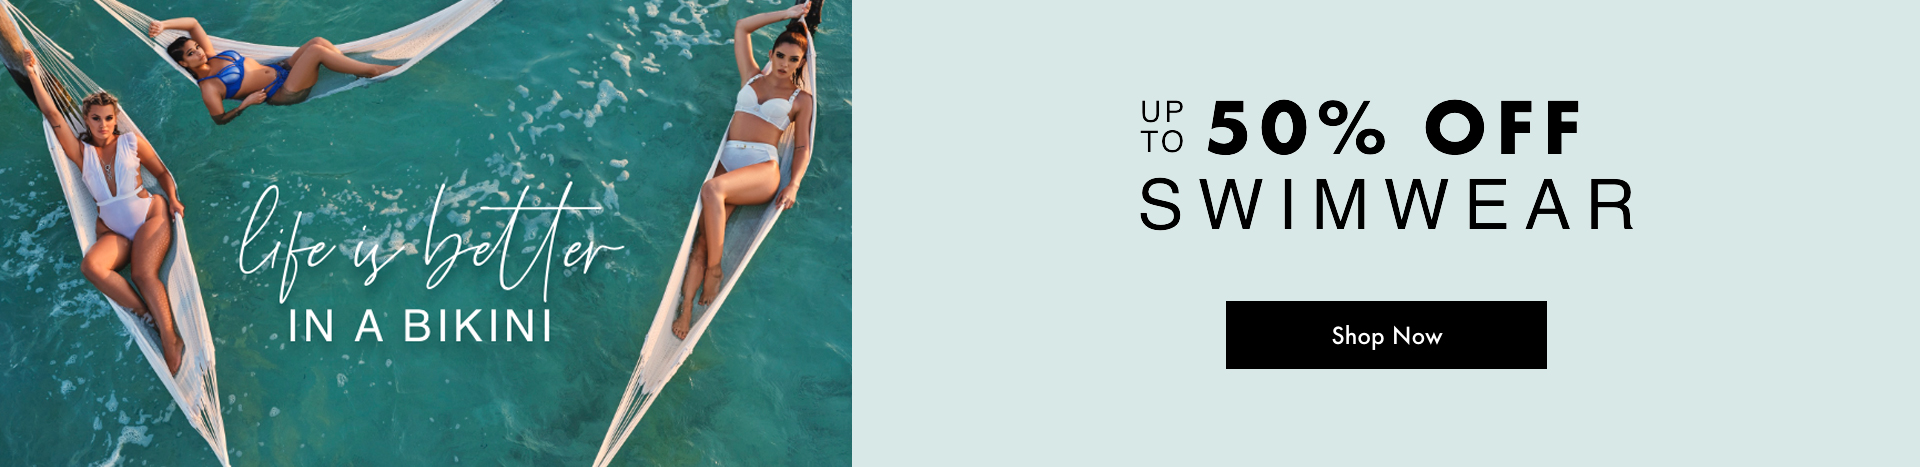 Up to 50% off Swimwear - Shop now